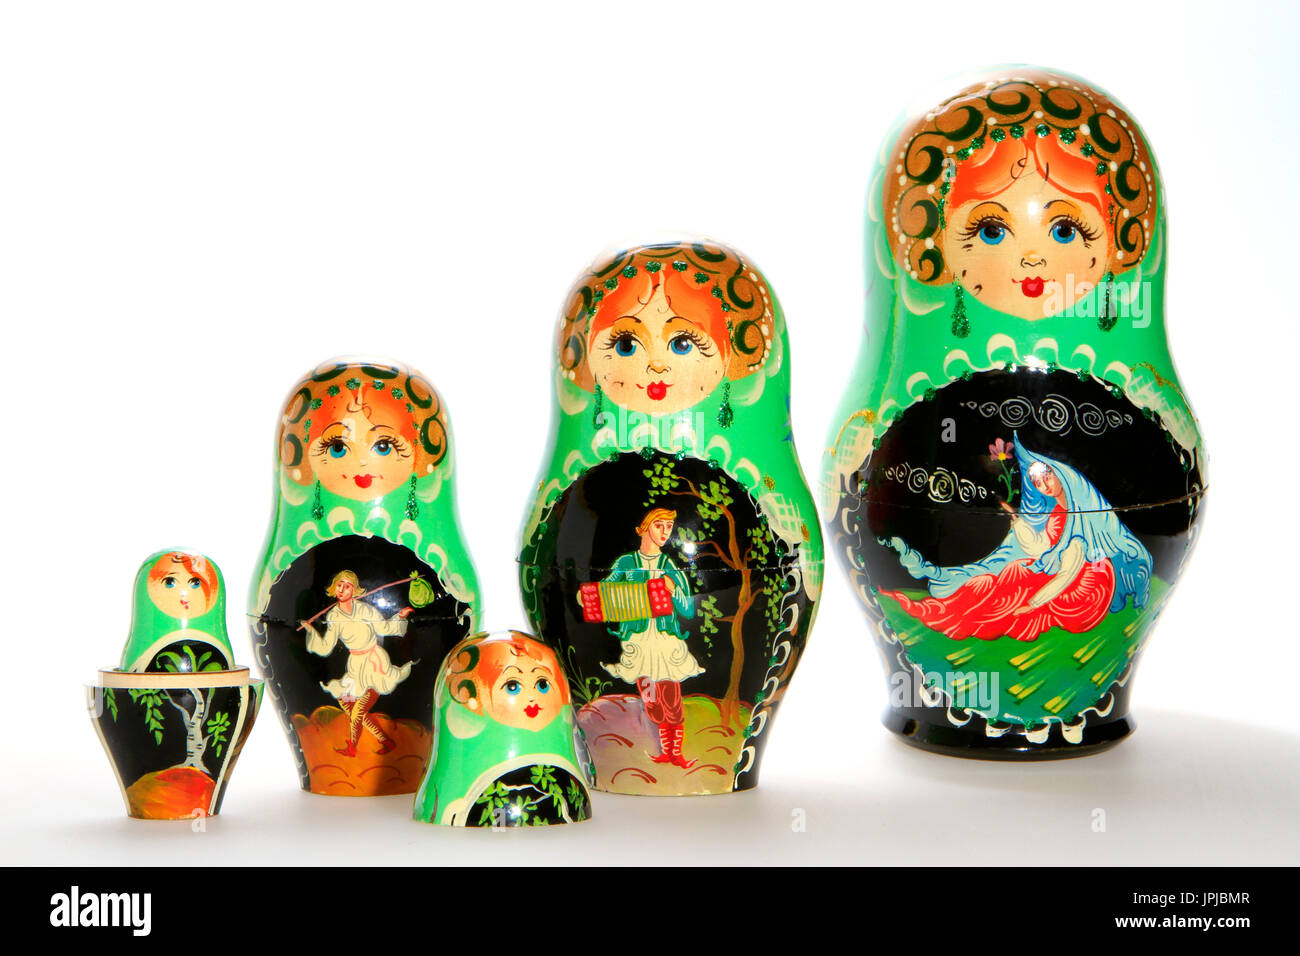 souvenirs from russia stockfotos souvenirs from russia bilder alamy. Black Bedroom Furniture Sets. Home Design Ideas